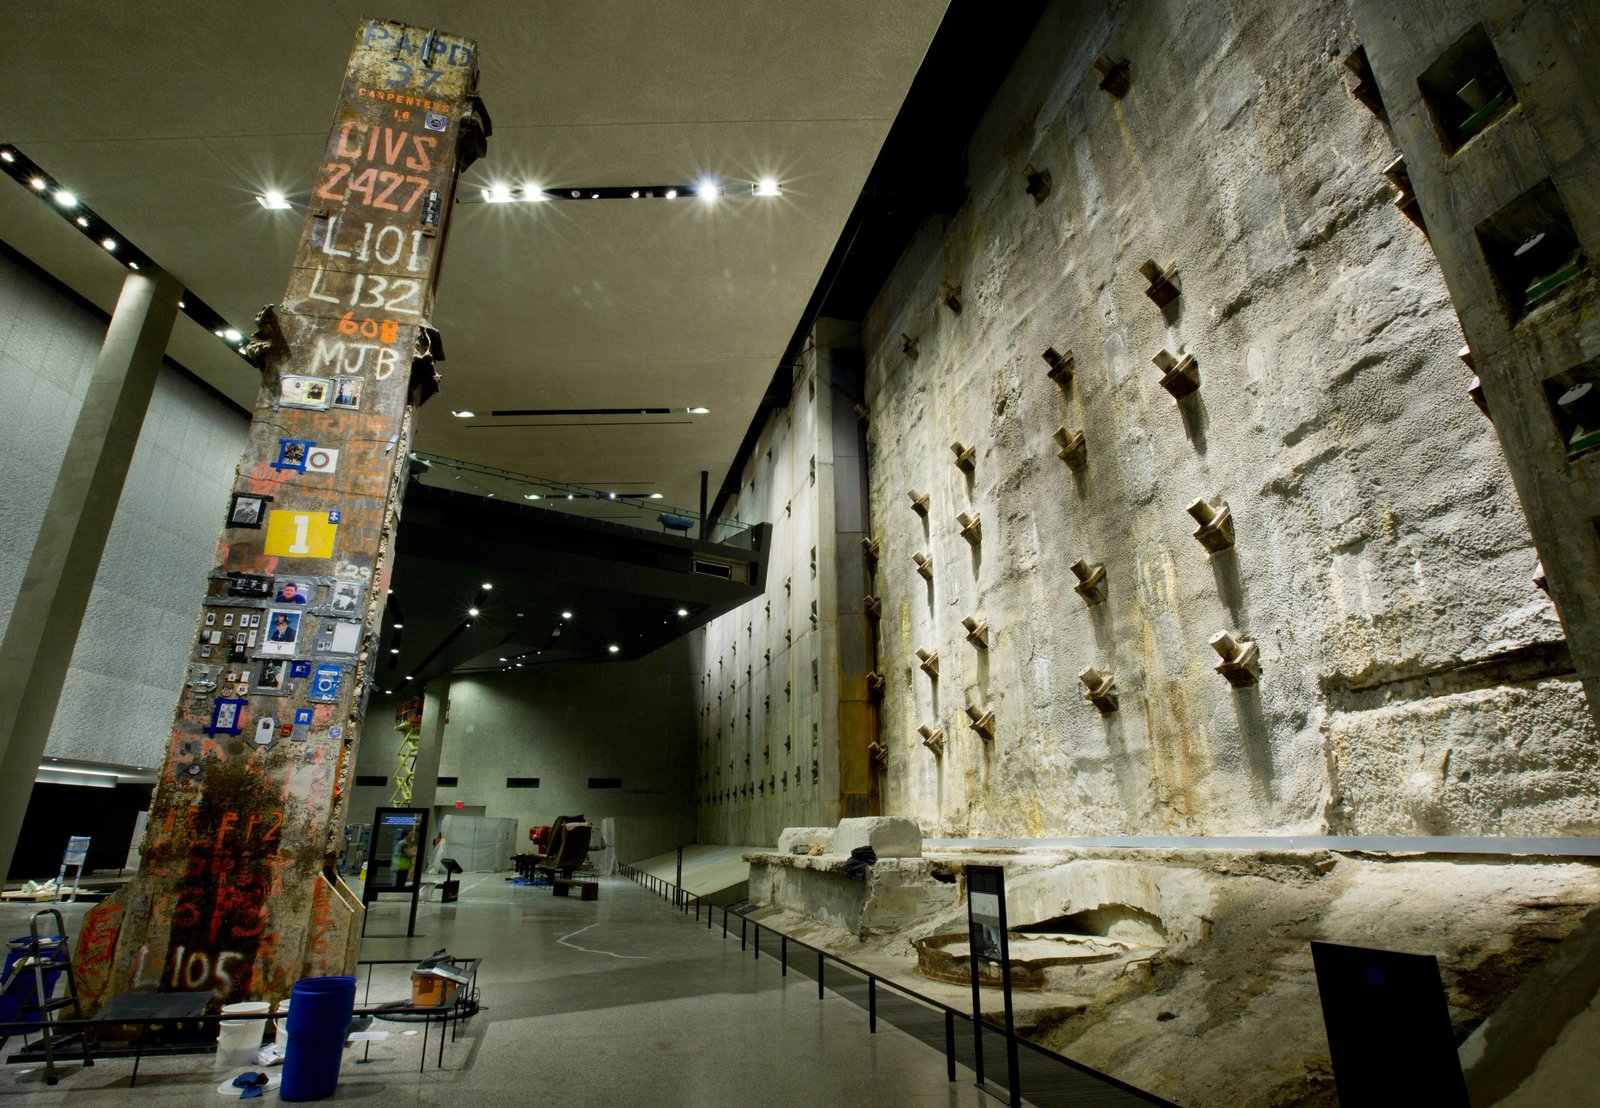 Column No. 1,001B, the last section of World Trade Center steel to be removed from Ground Zero, stands 37 feet tall next to the slurry wall inside the National September 11 Memorial Museum, designed by Davis Brody Bond. The museum opened in May.  Photo 1 of 14 in At Ground Zero Bedrock, the 9/11 Museum Prepares for Visitors